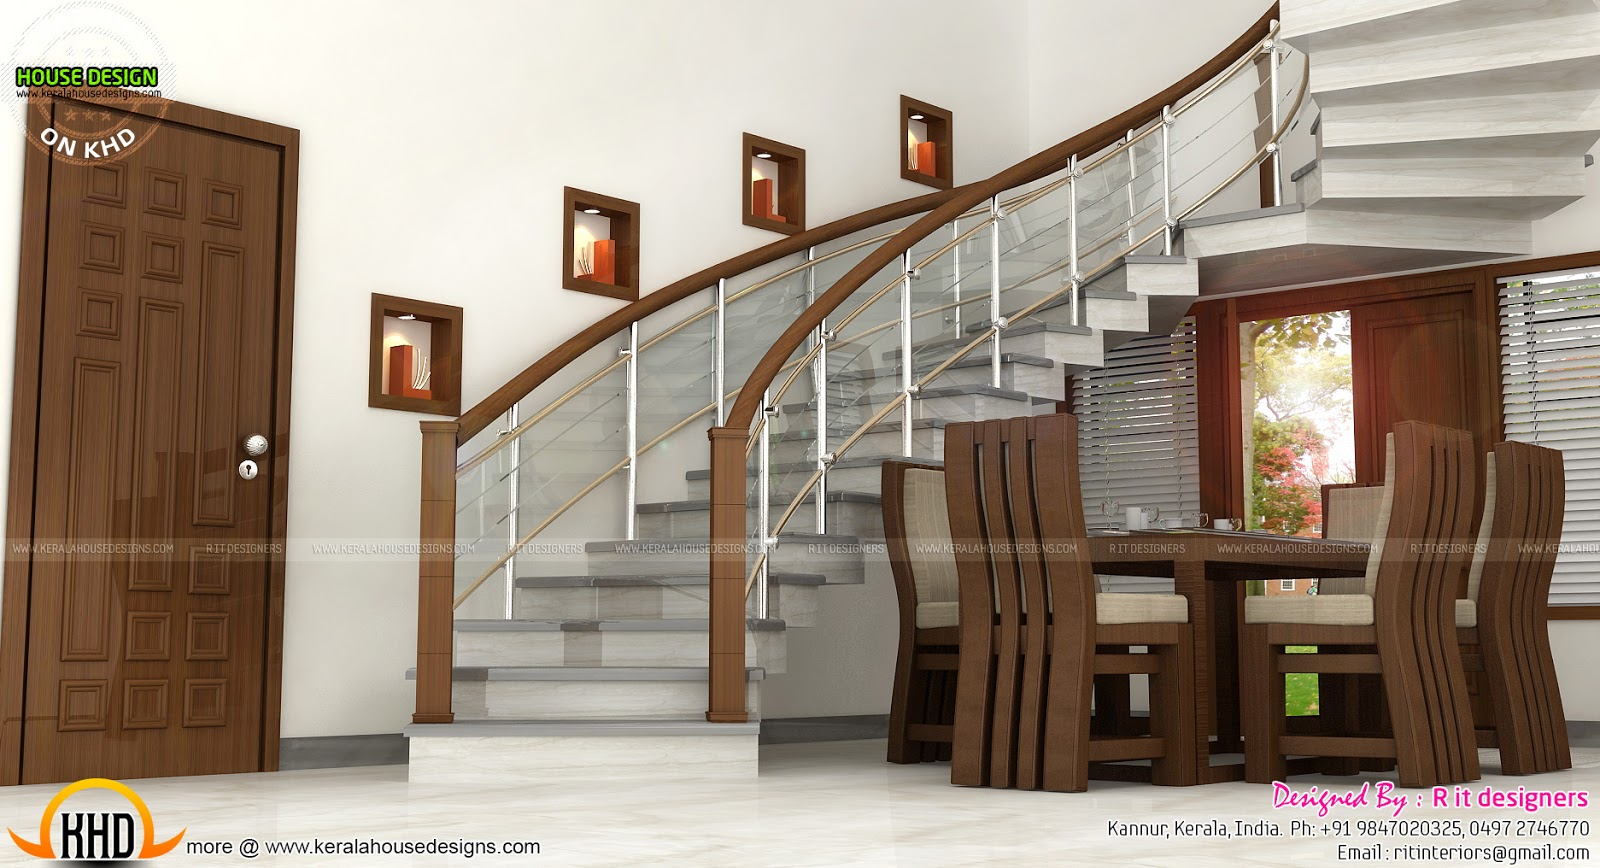 June 2015 kerala home design and floor plans Interior design ideas for kerala houses